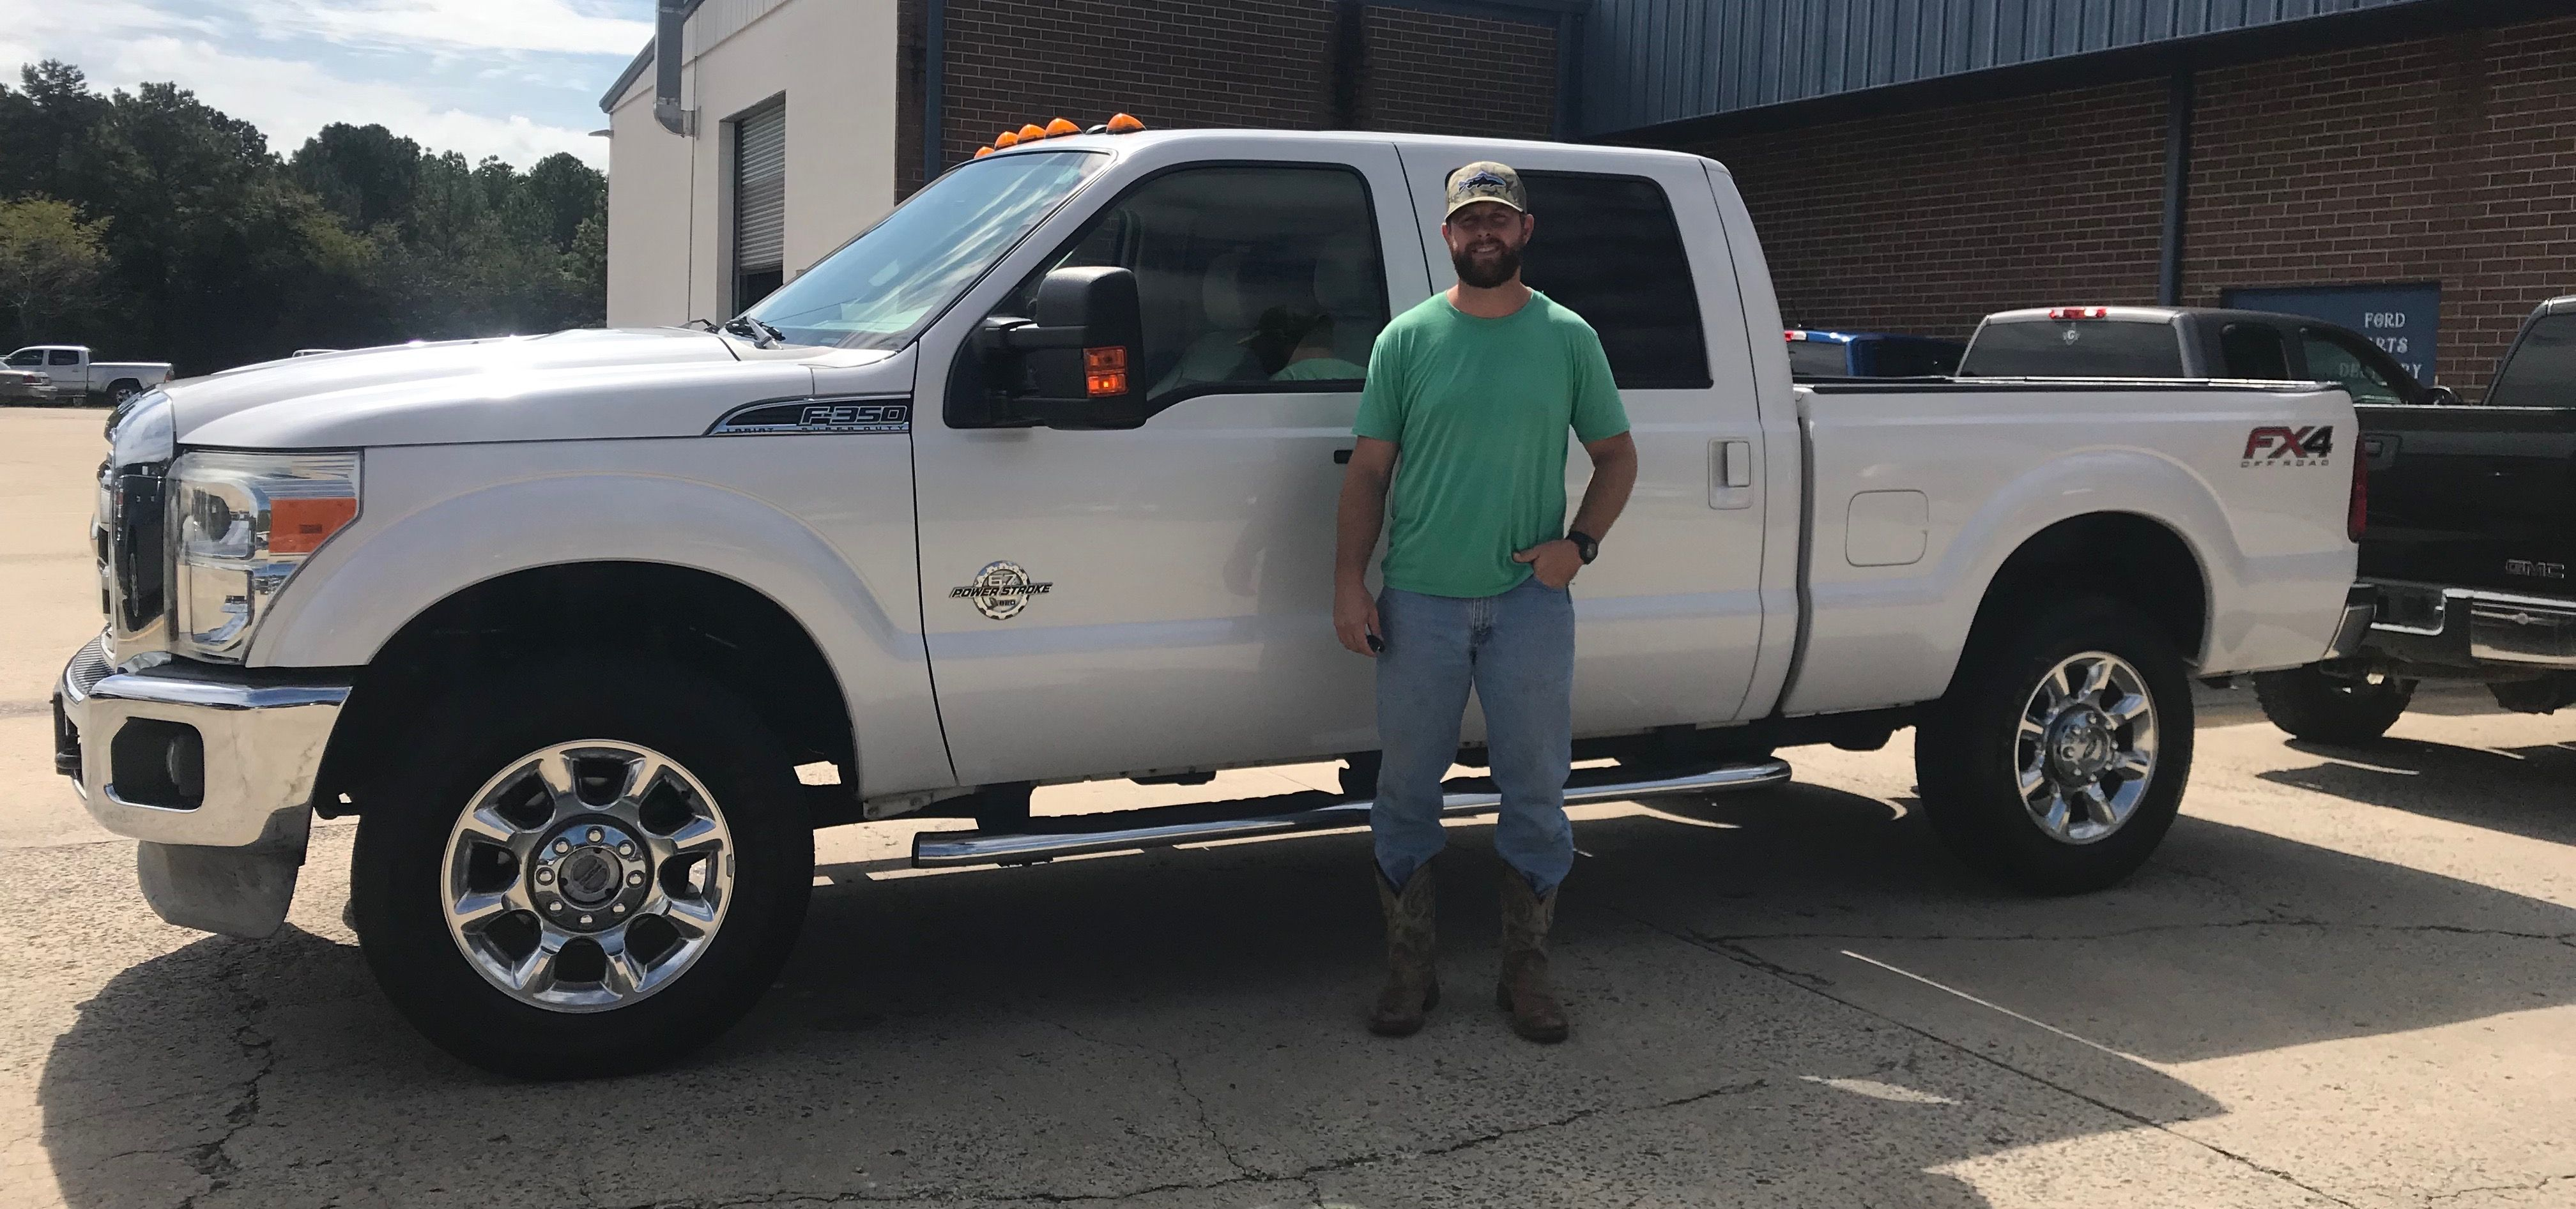 congratulations evan brown of dalton ga on your cool new 2012 f 350 lariat sold by jared langham and brian smith we apprec car ford ford news things to sell pinterest